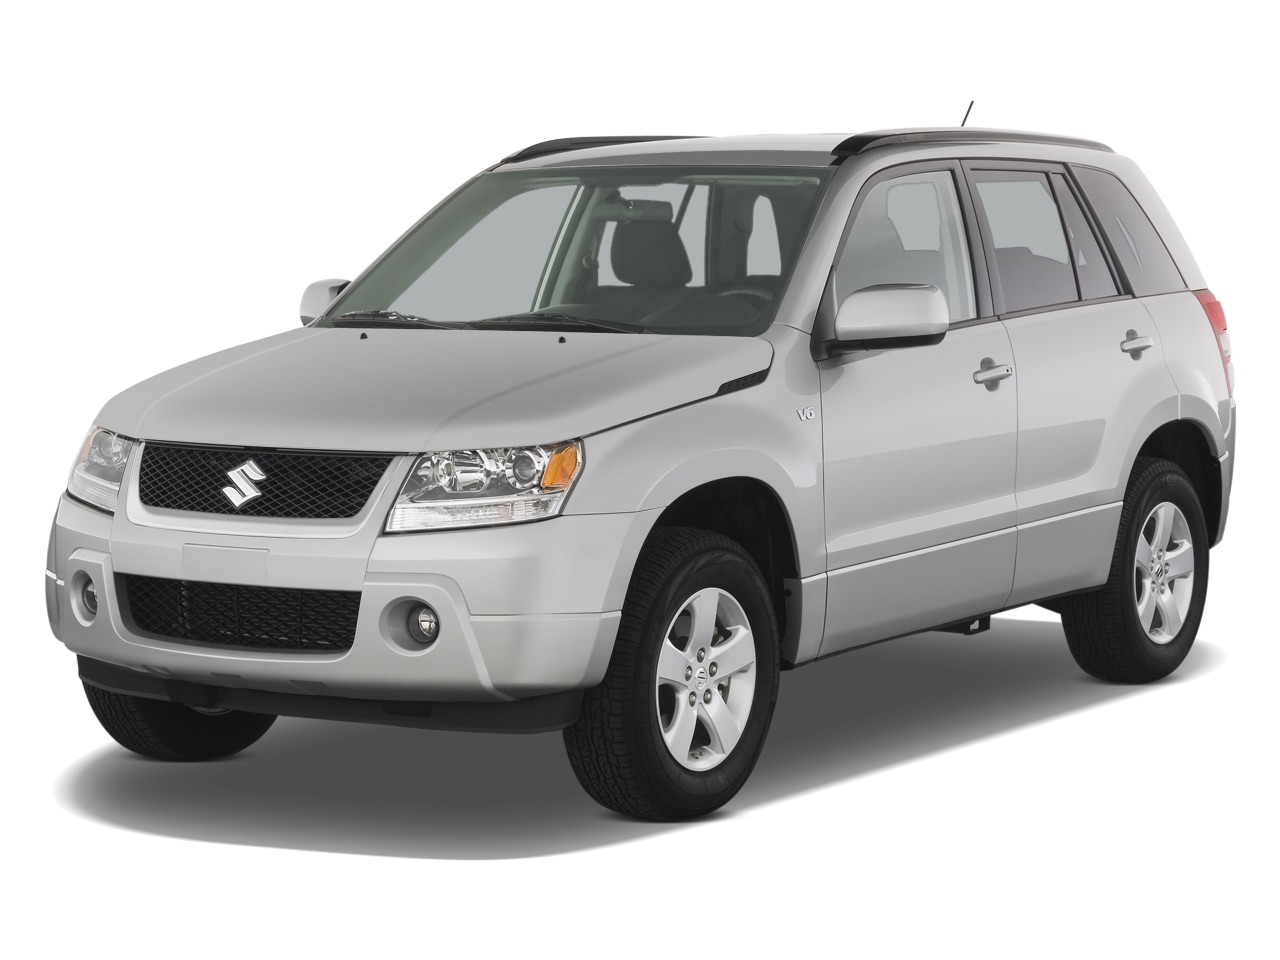 Suzuki Grand Vitara Xl7 2016 Service Manual